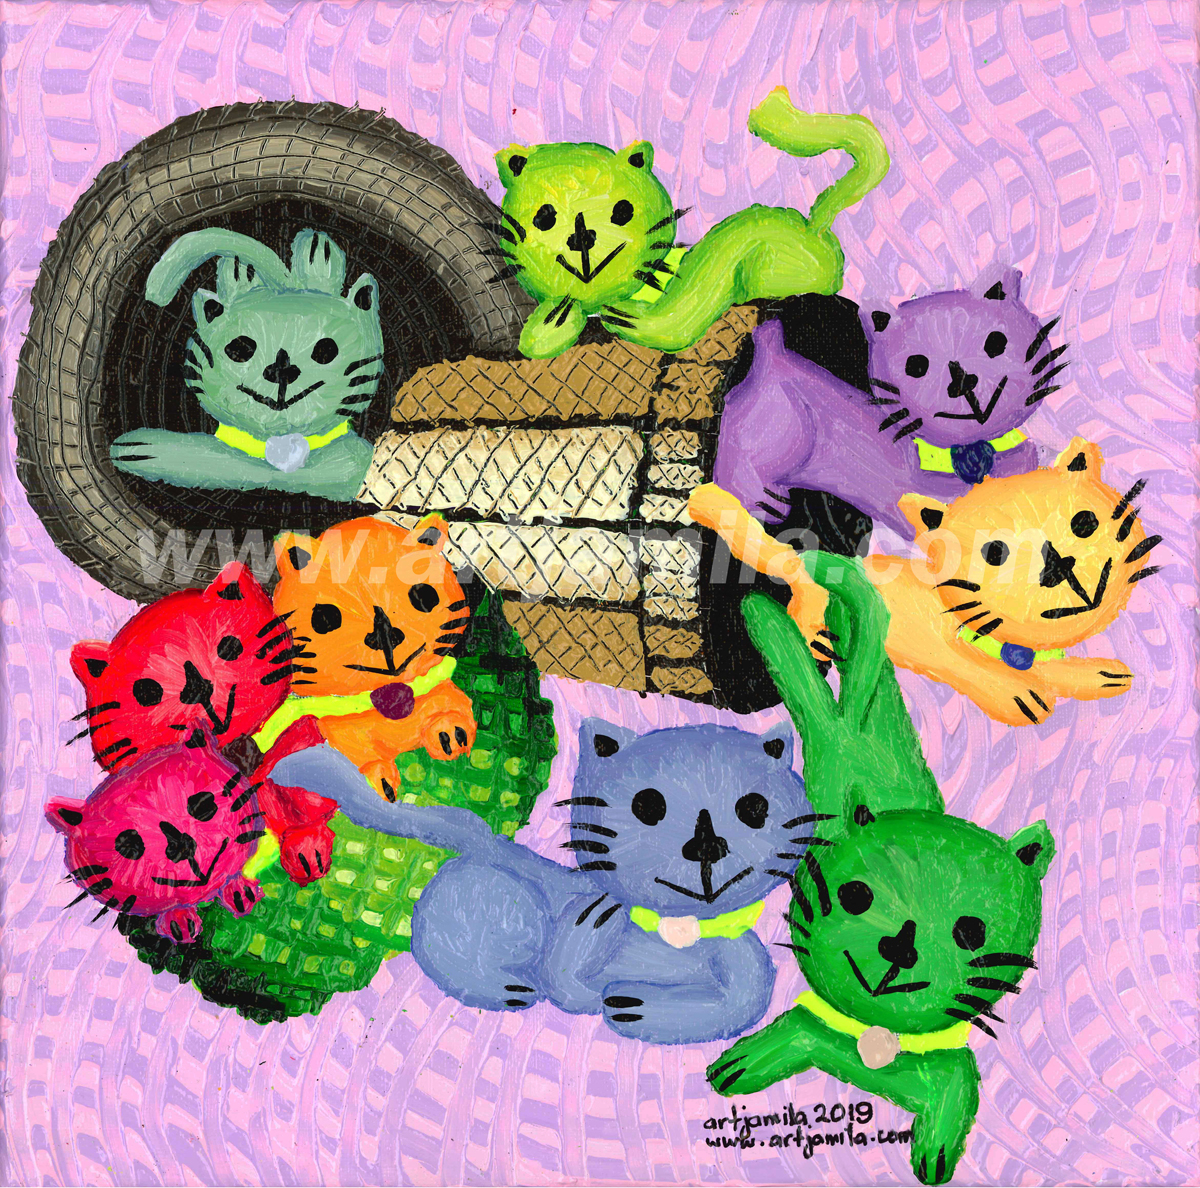 Cats in baskets series 14. watermark